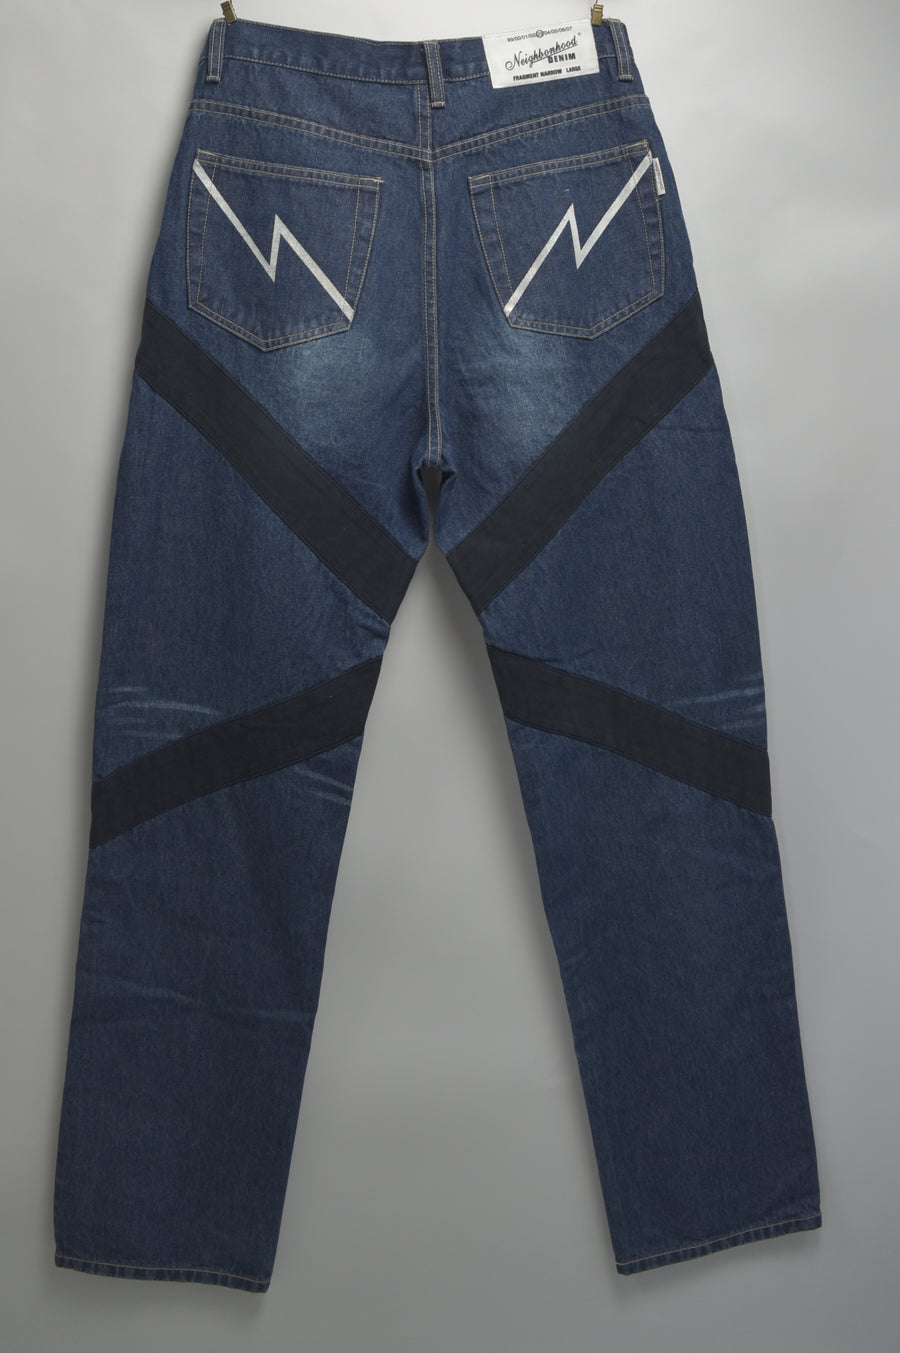 NEIGHBORHOOD / NBHD FRAGMENT denim pants